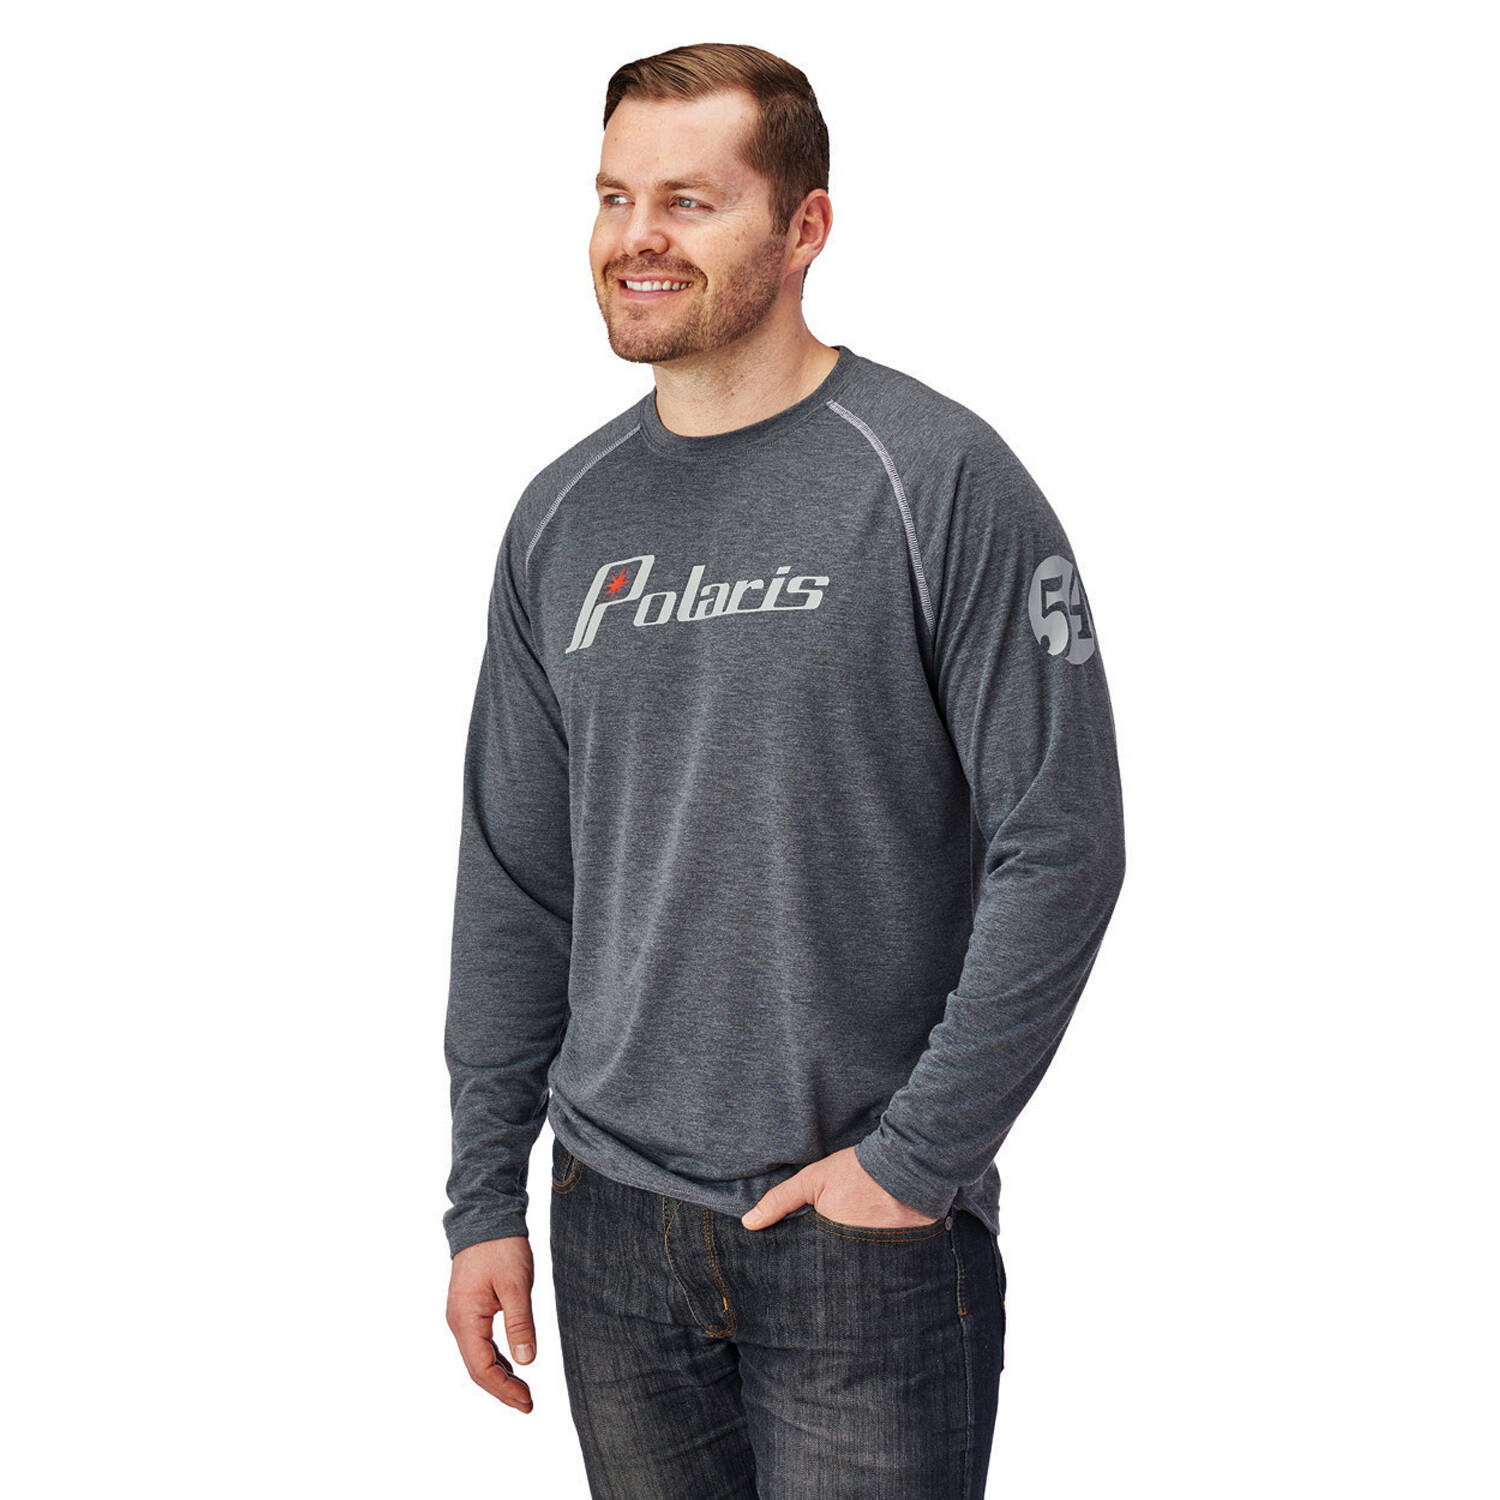 Men's Long-Sleeve Retro Graphic Performance Shirt with Polaris® Logo, Gray